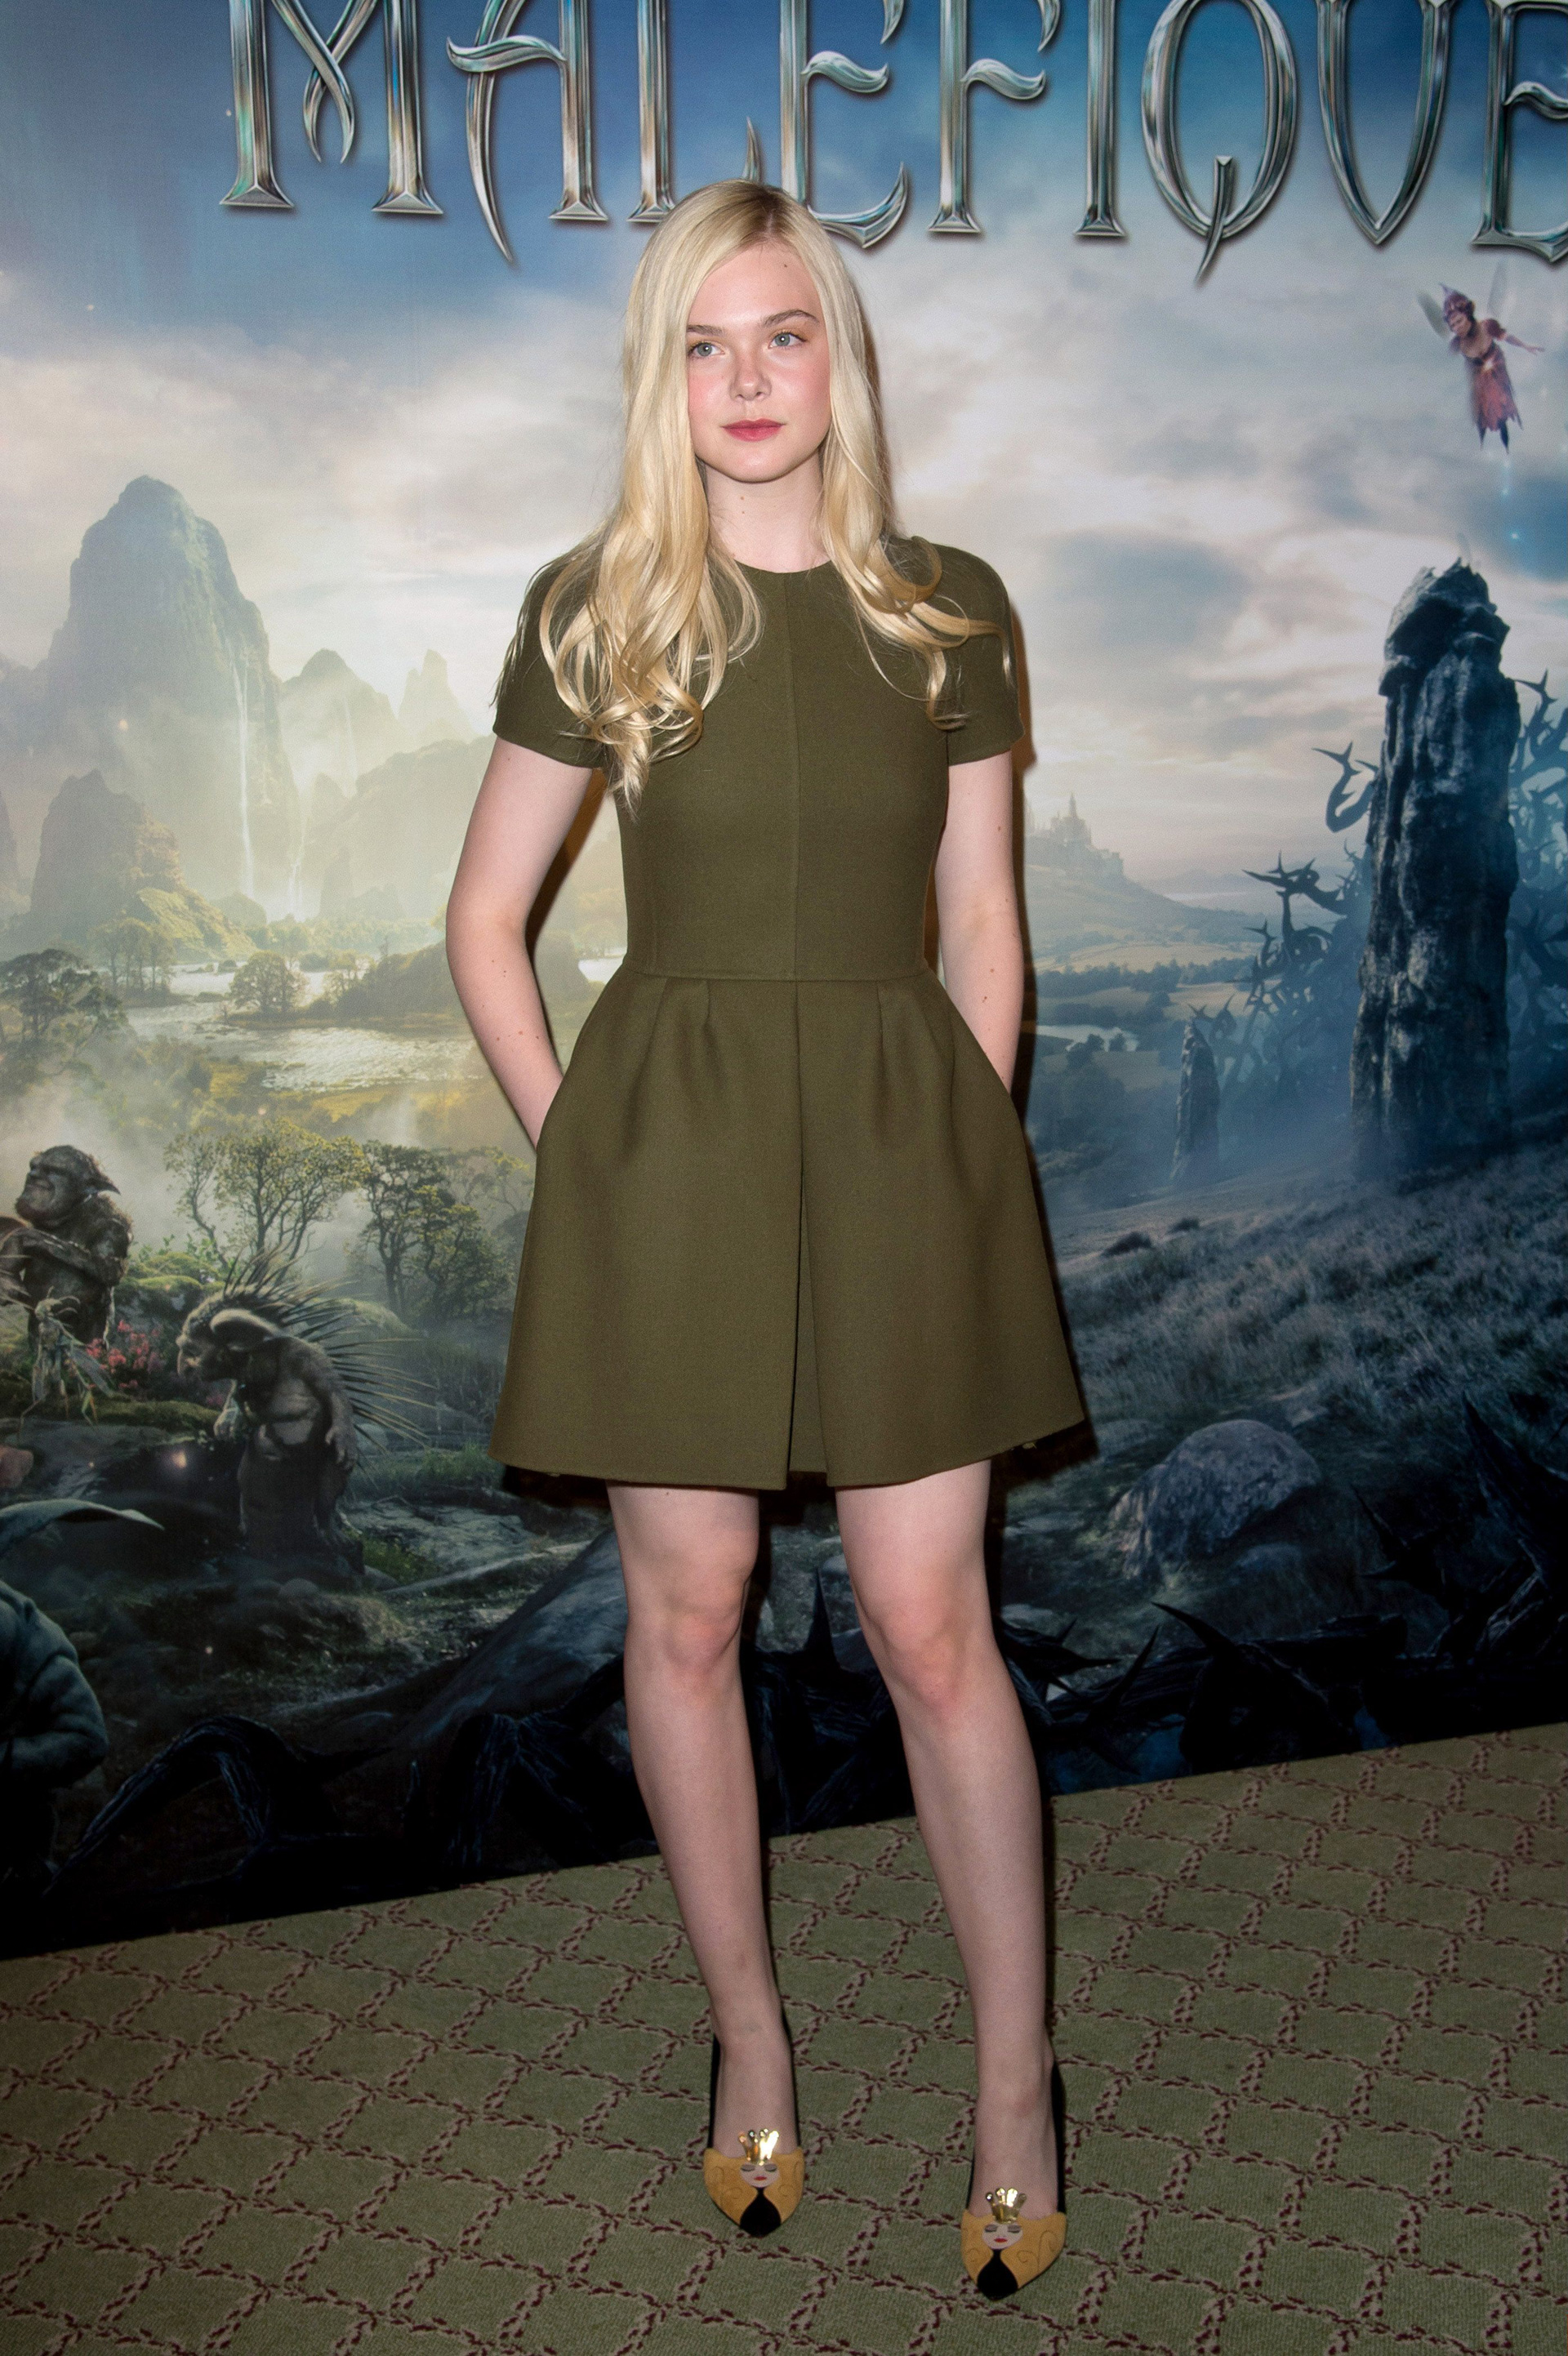 Elle Fanning at Maleficent photo call wearing a fit and flare army green dress